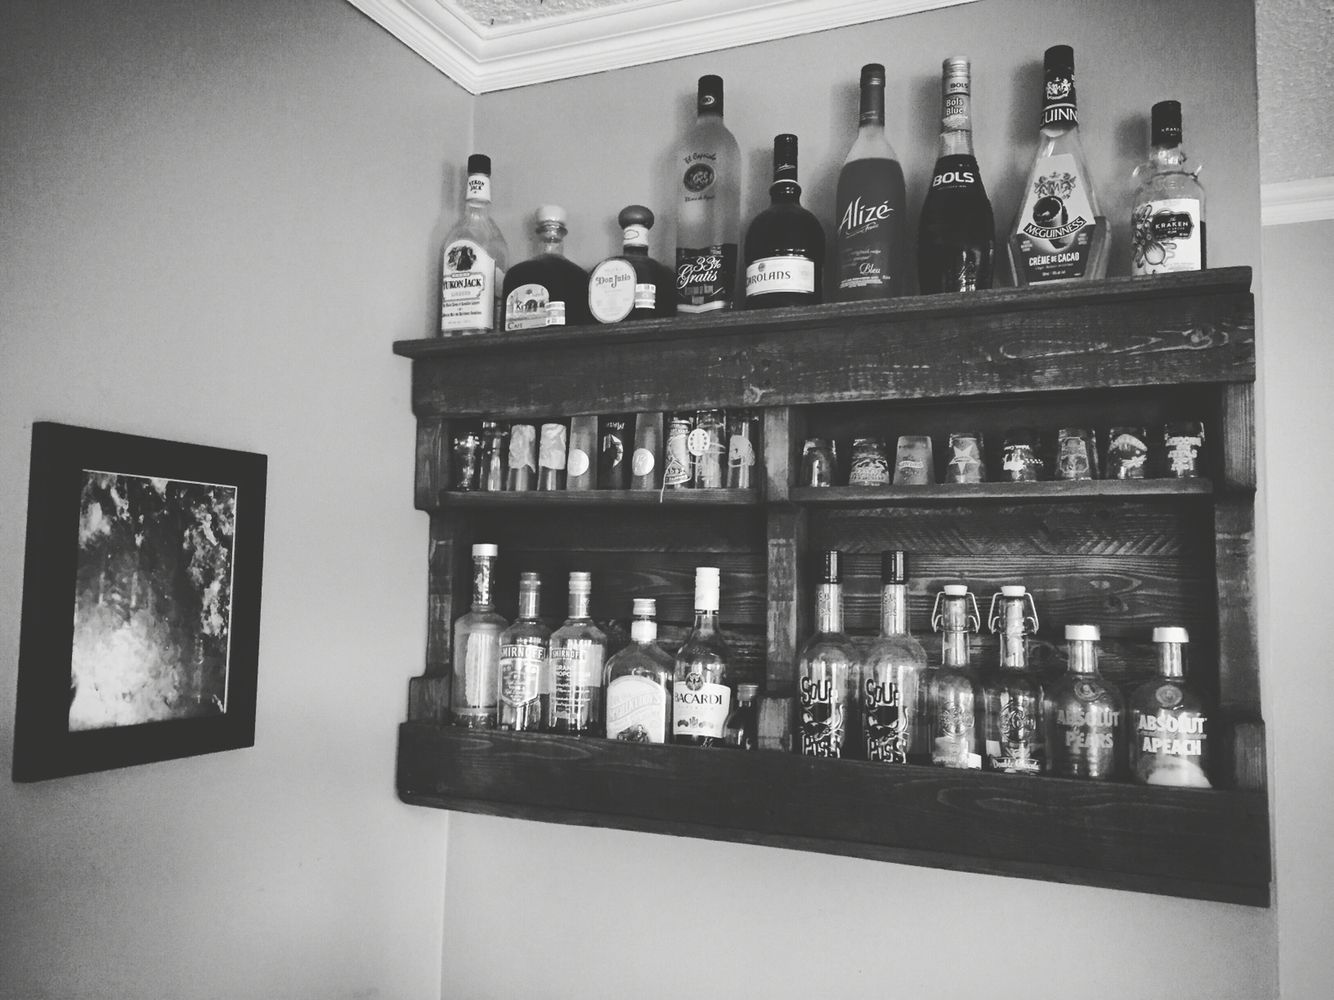 DIY pallet liquor shelf | Crafty Ideas For the Home in 2019